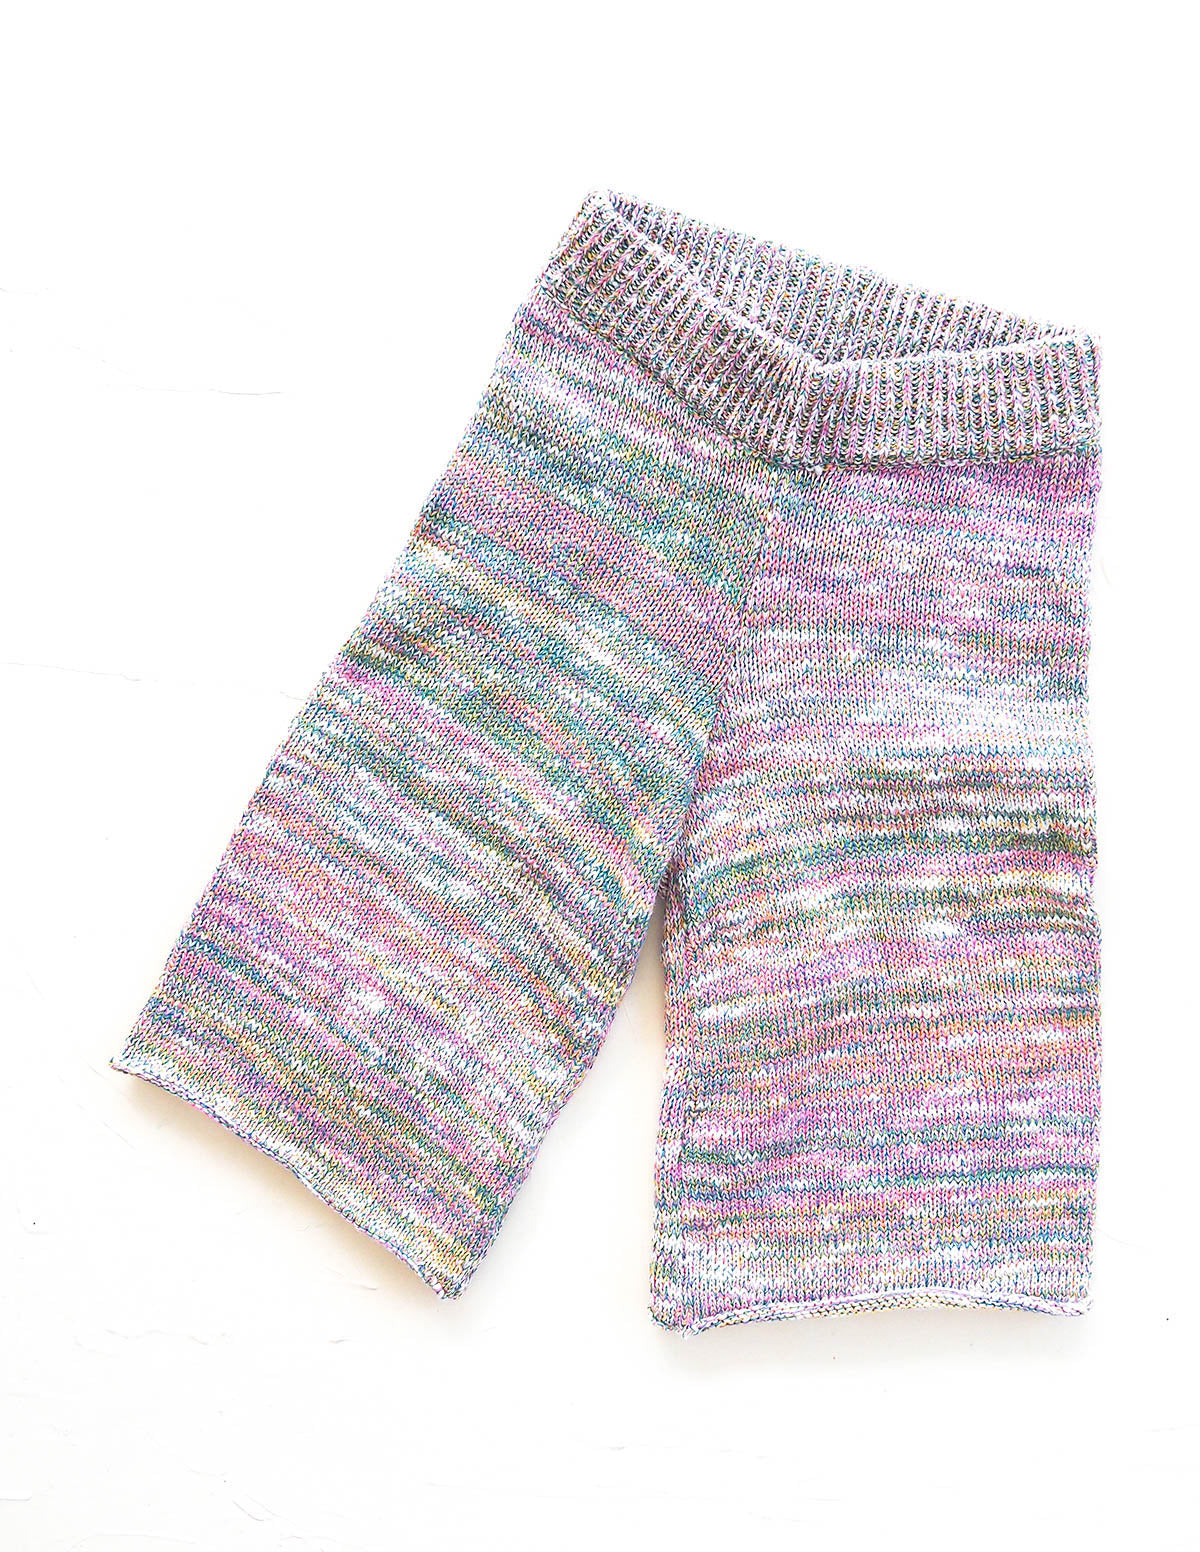 The Rainbow Heirloom Pant